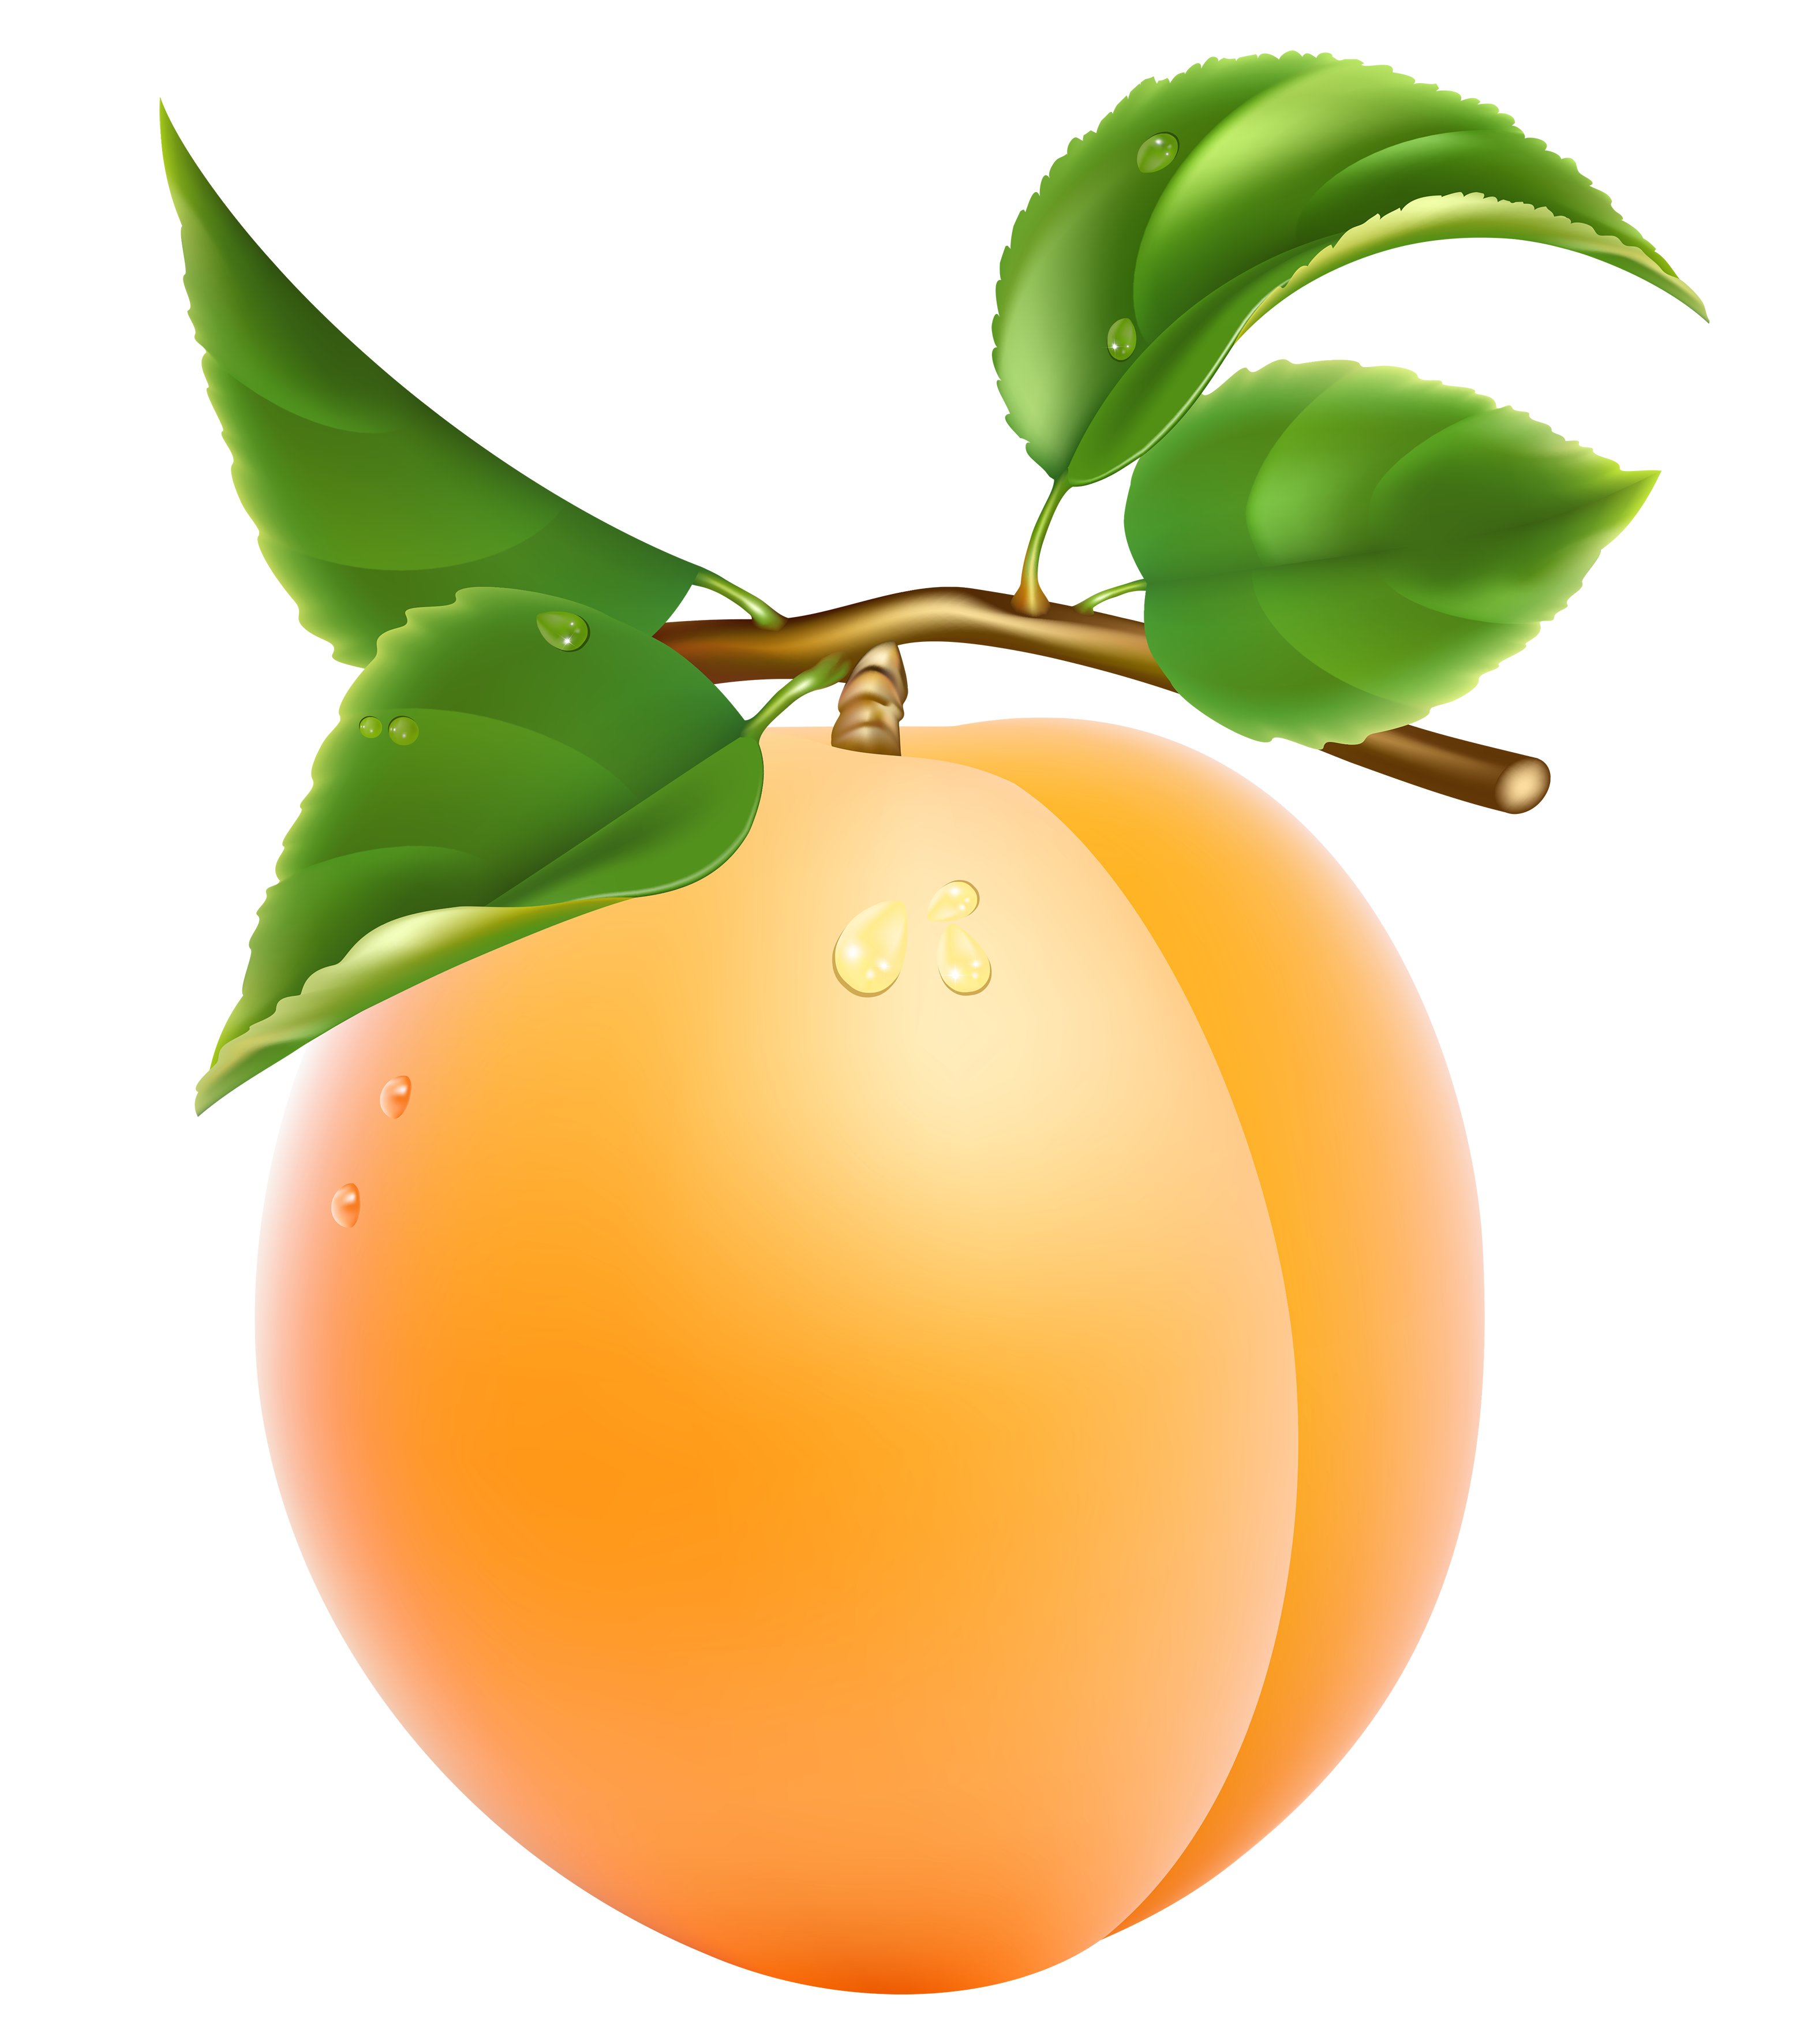 Fruit clipart person. Apricot peach free collection